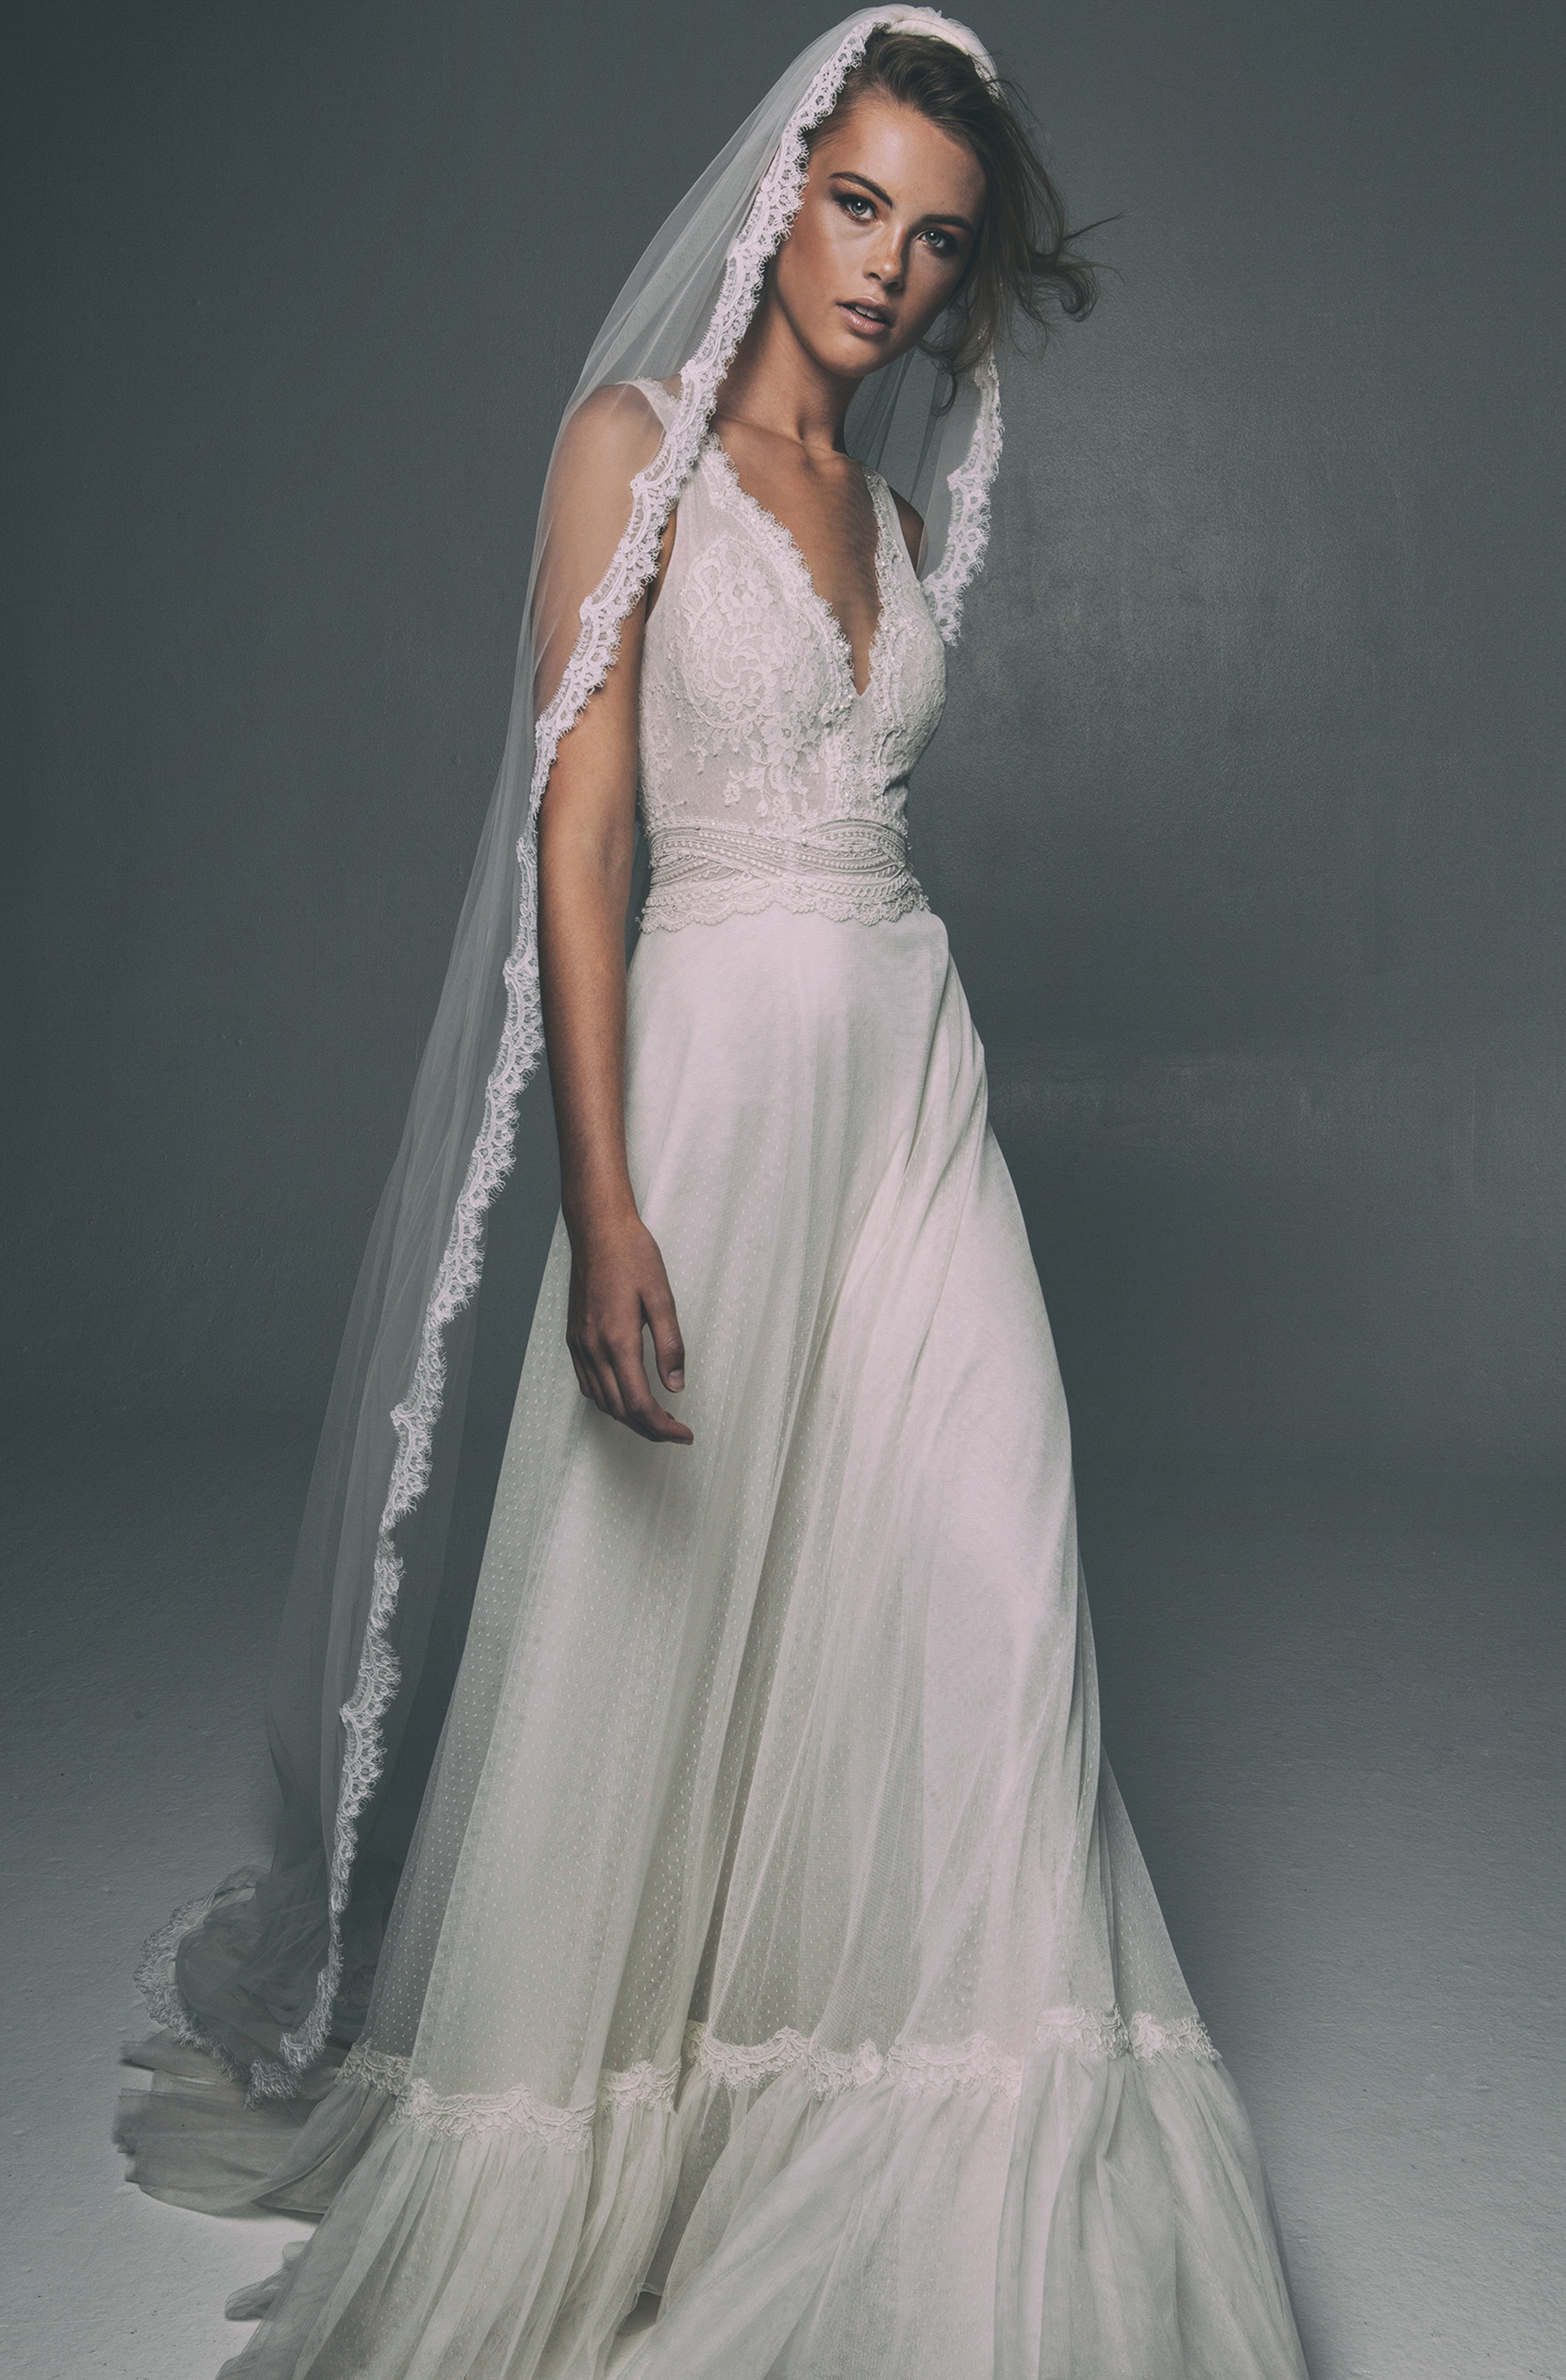 Bridal collection Fall 2018 by Mairi Mparola